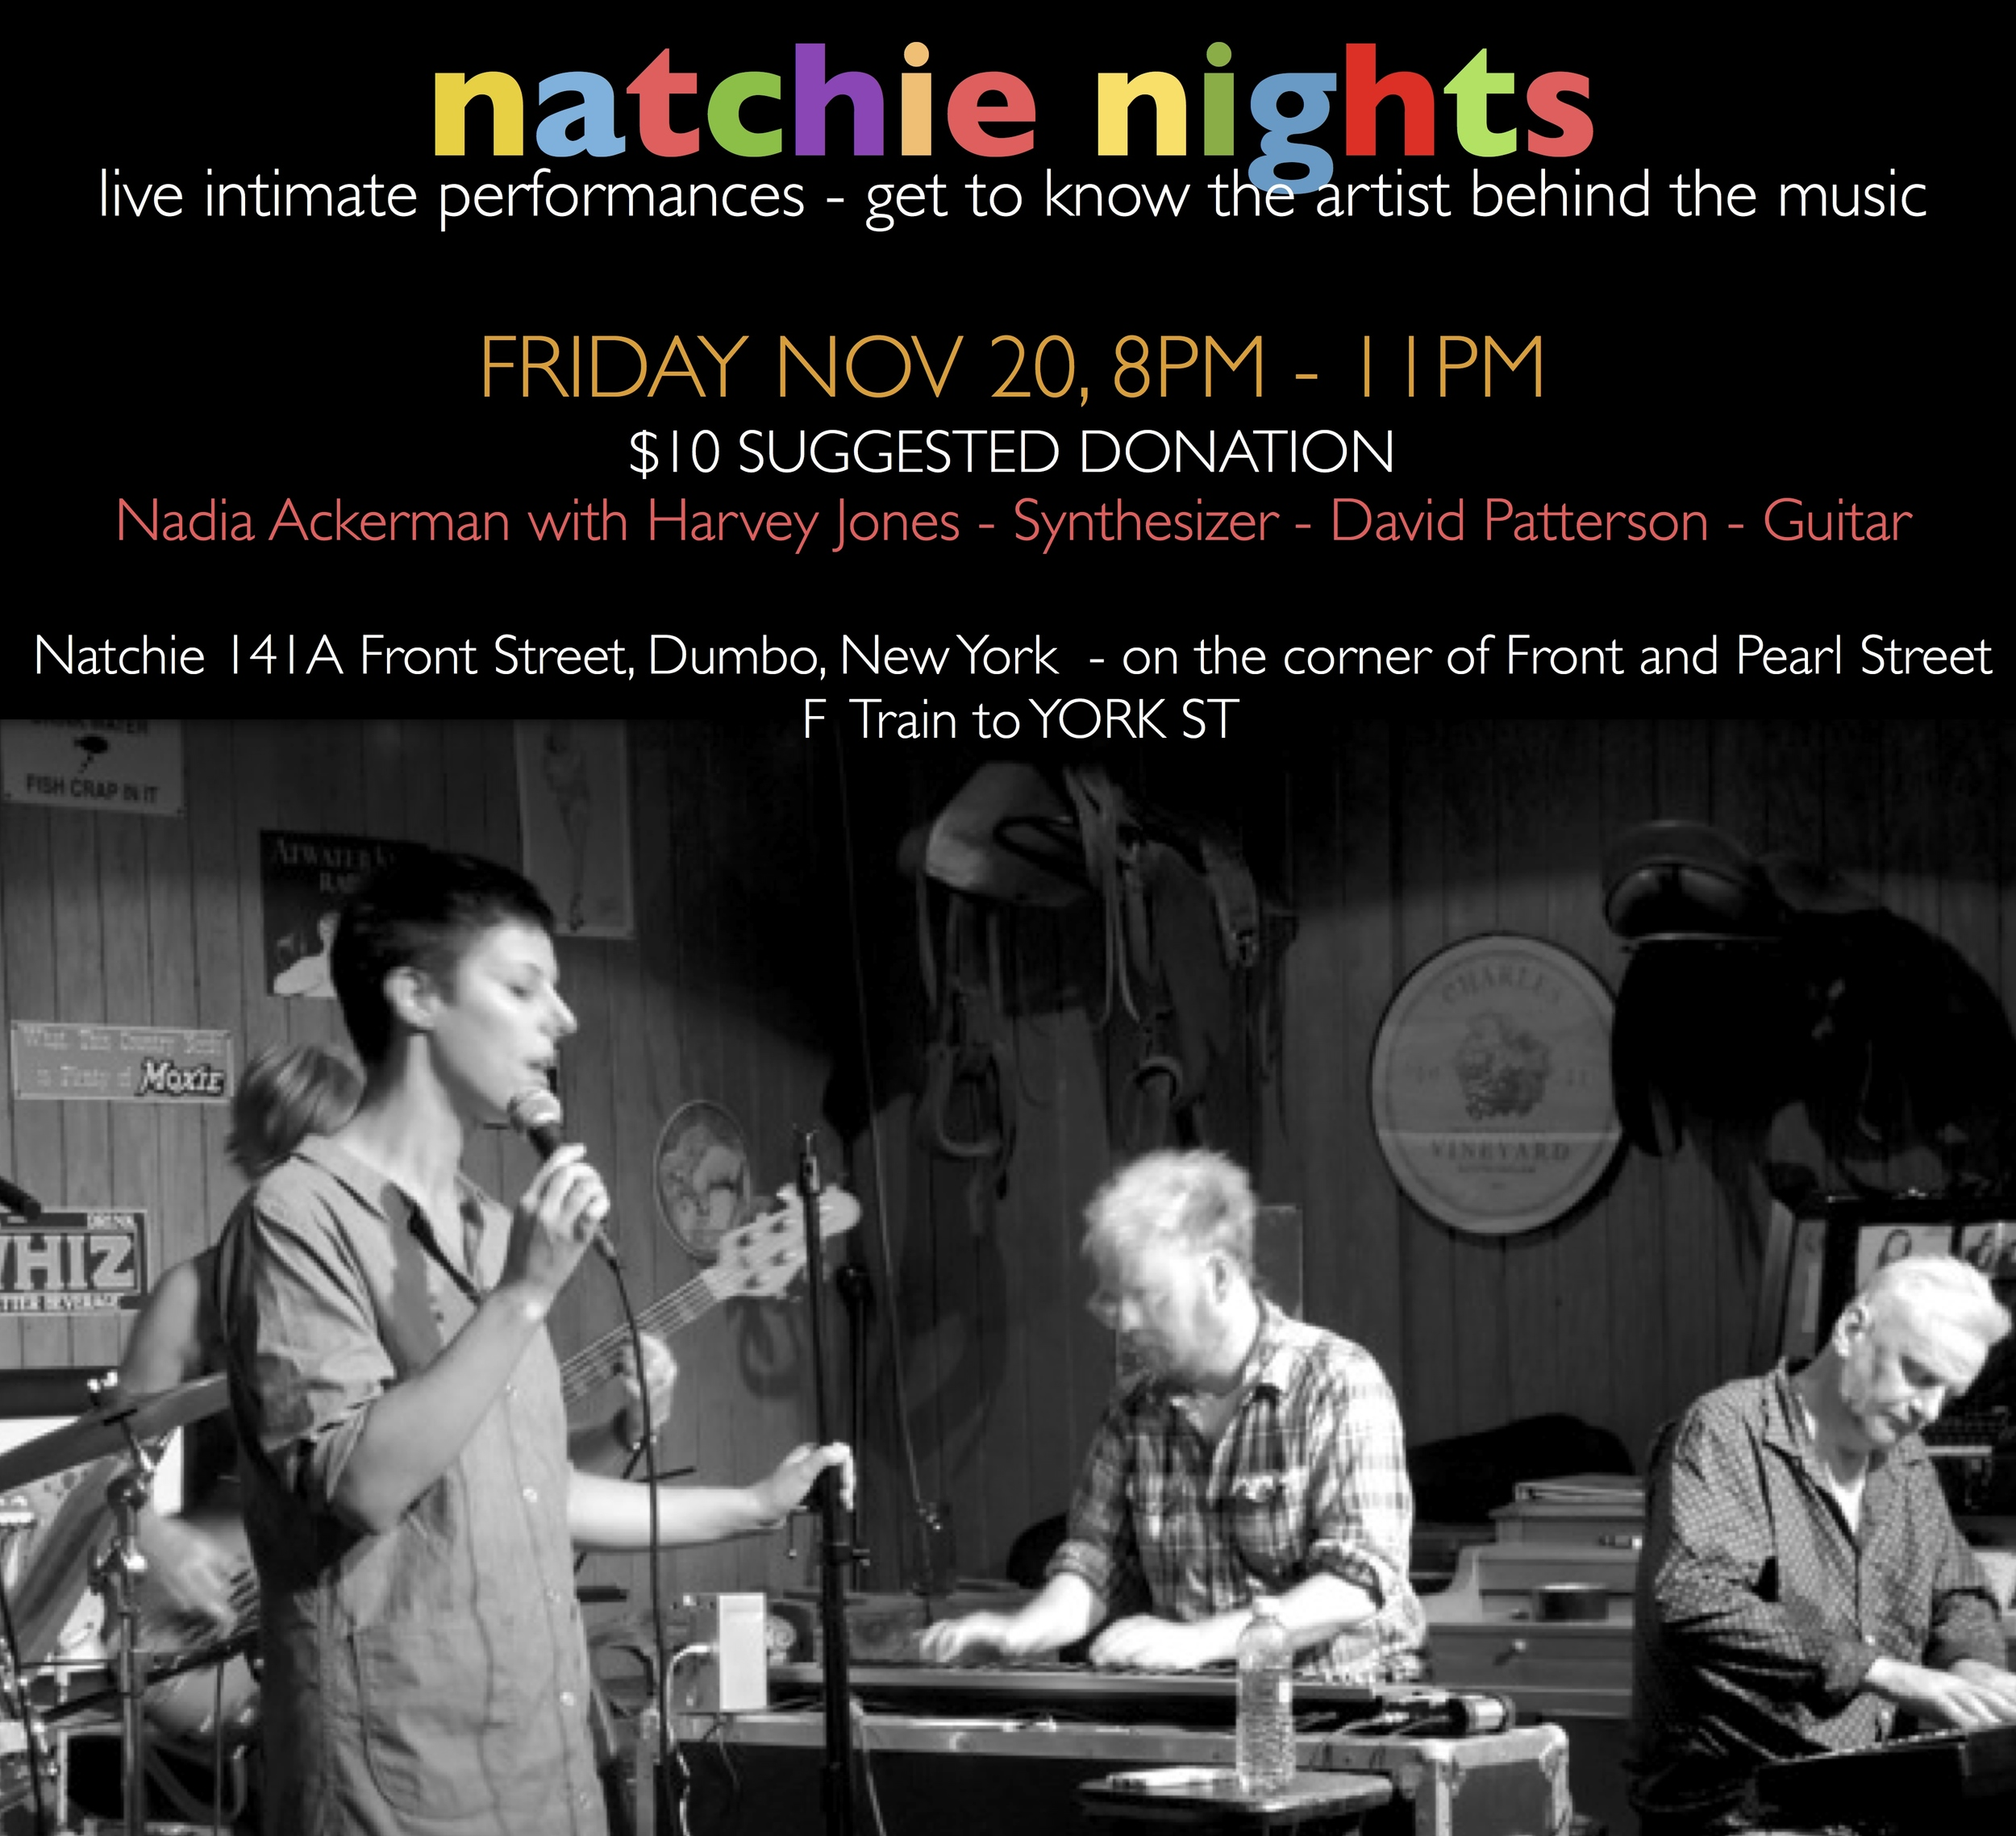 Natchie Nights Nadia Ackerman Flyer.jpg